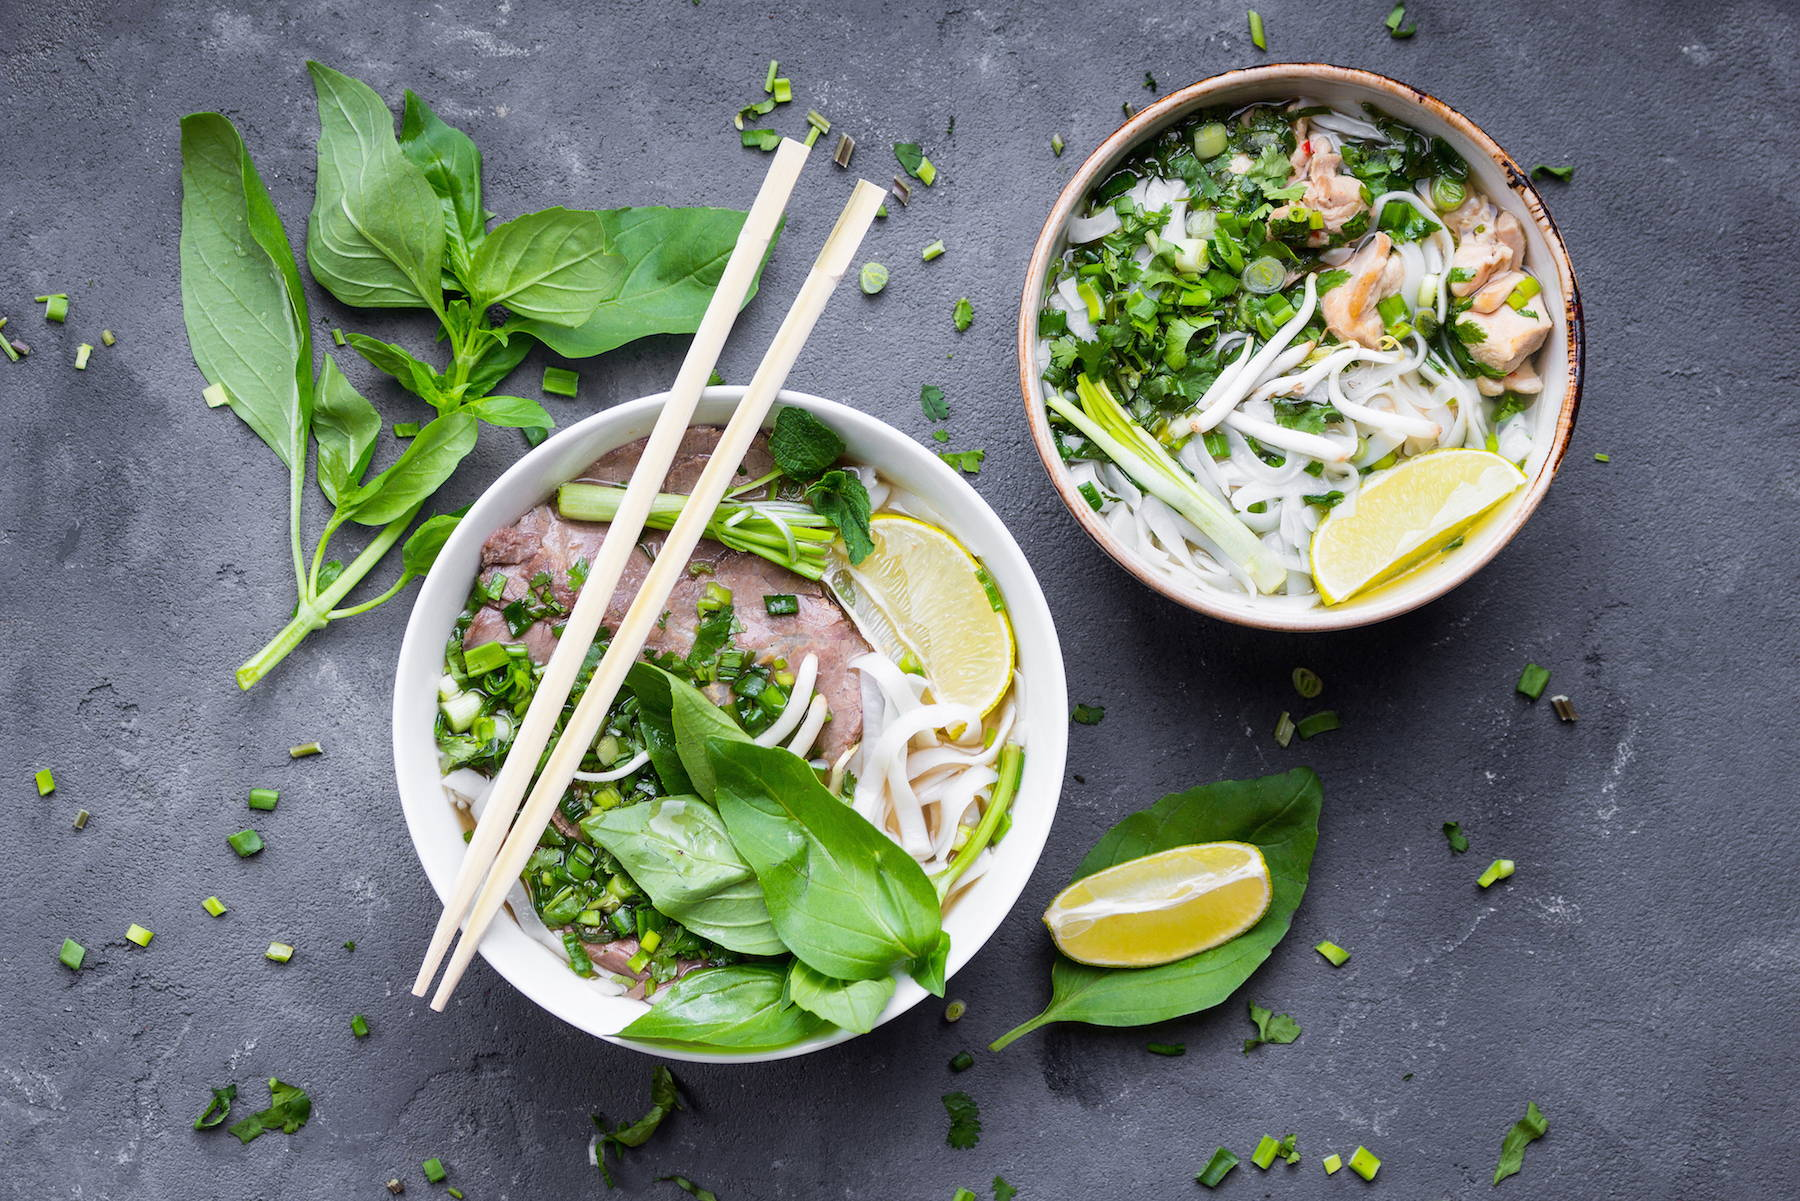 Vietnames Pho is a delicious option for healthy eating out